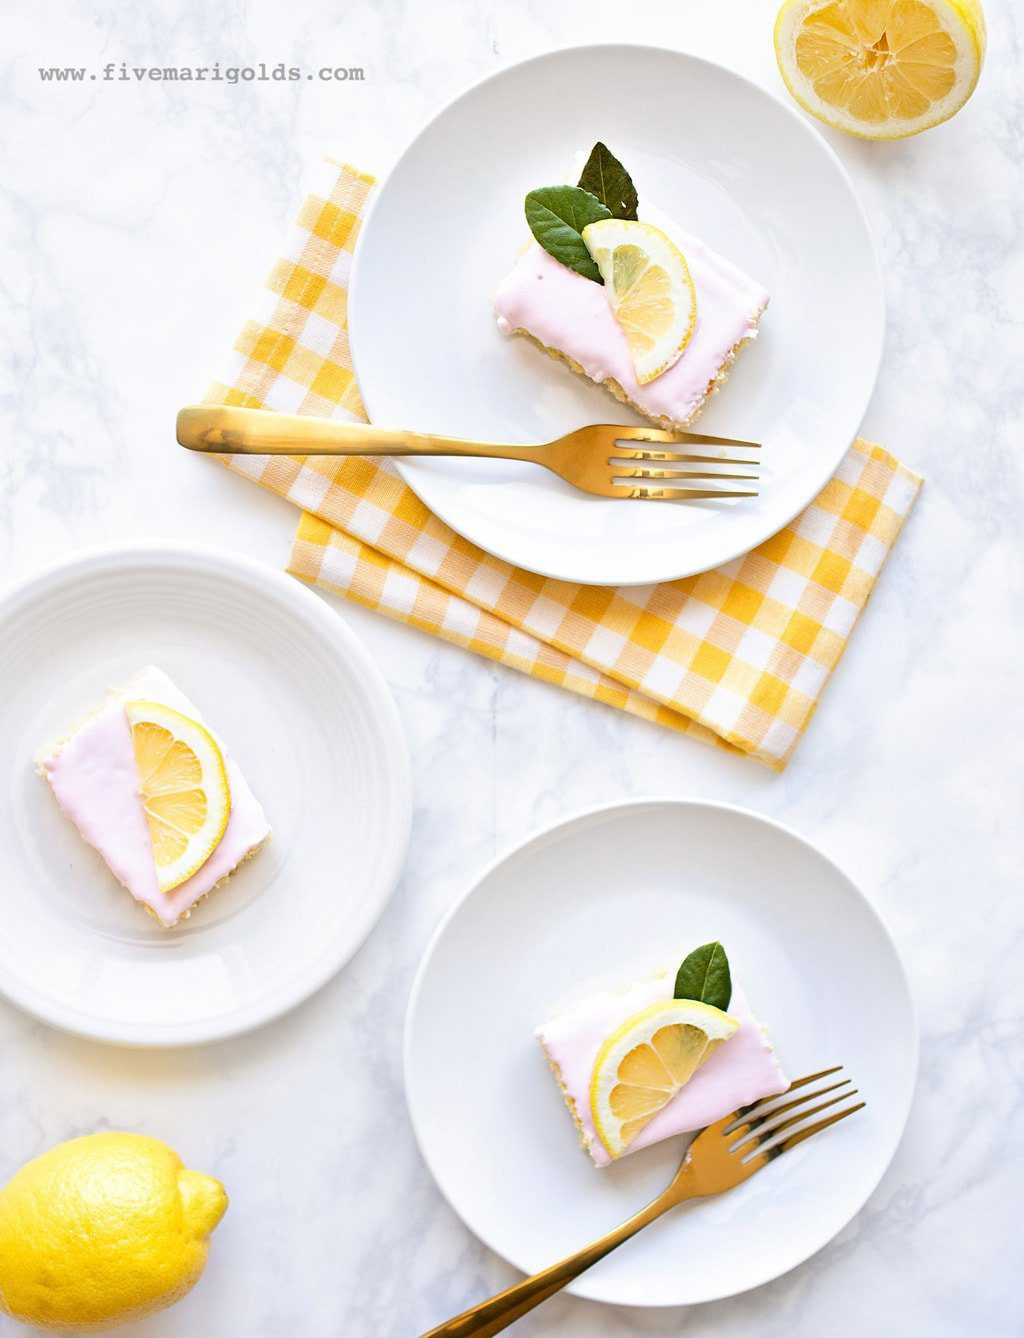 Sheet Cake with pink frosting and lemon slices